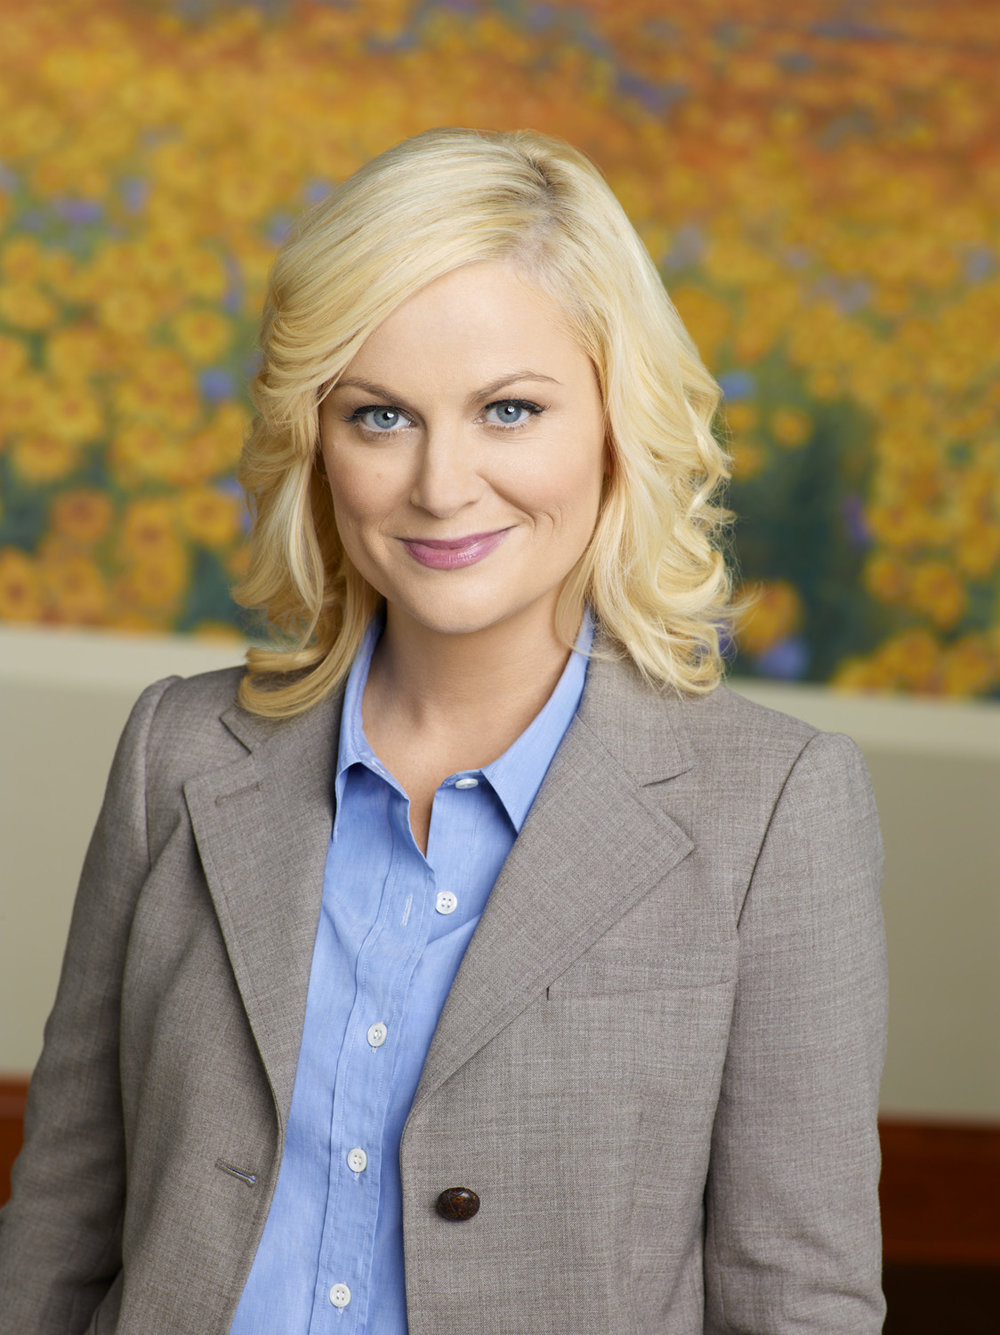 amy-poehler-parks-and-recreation-21.jpg